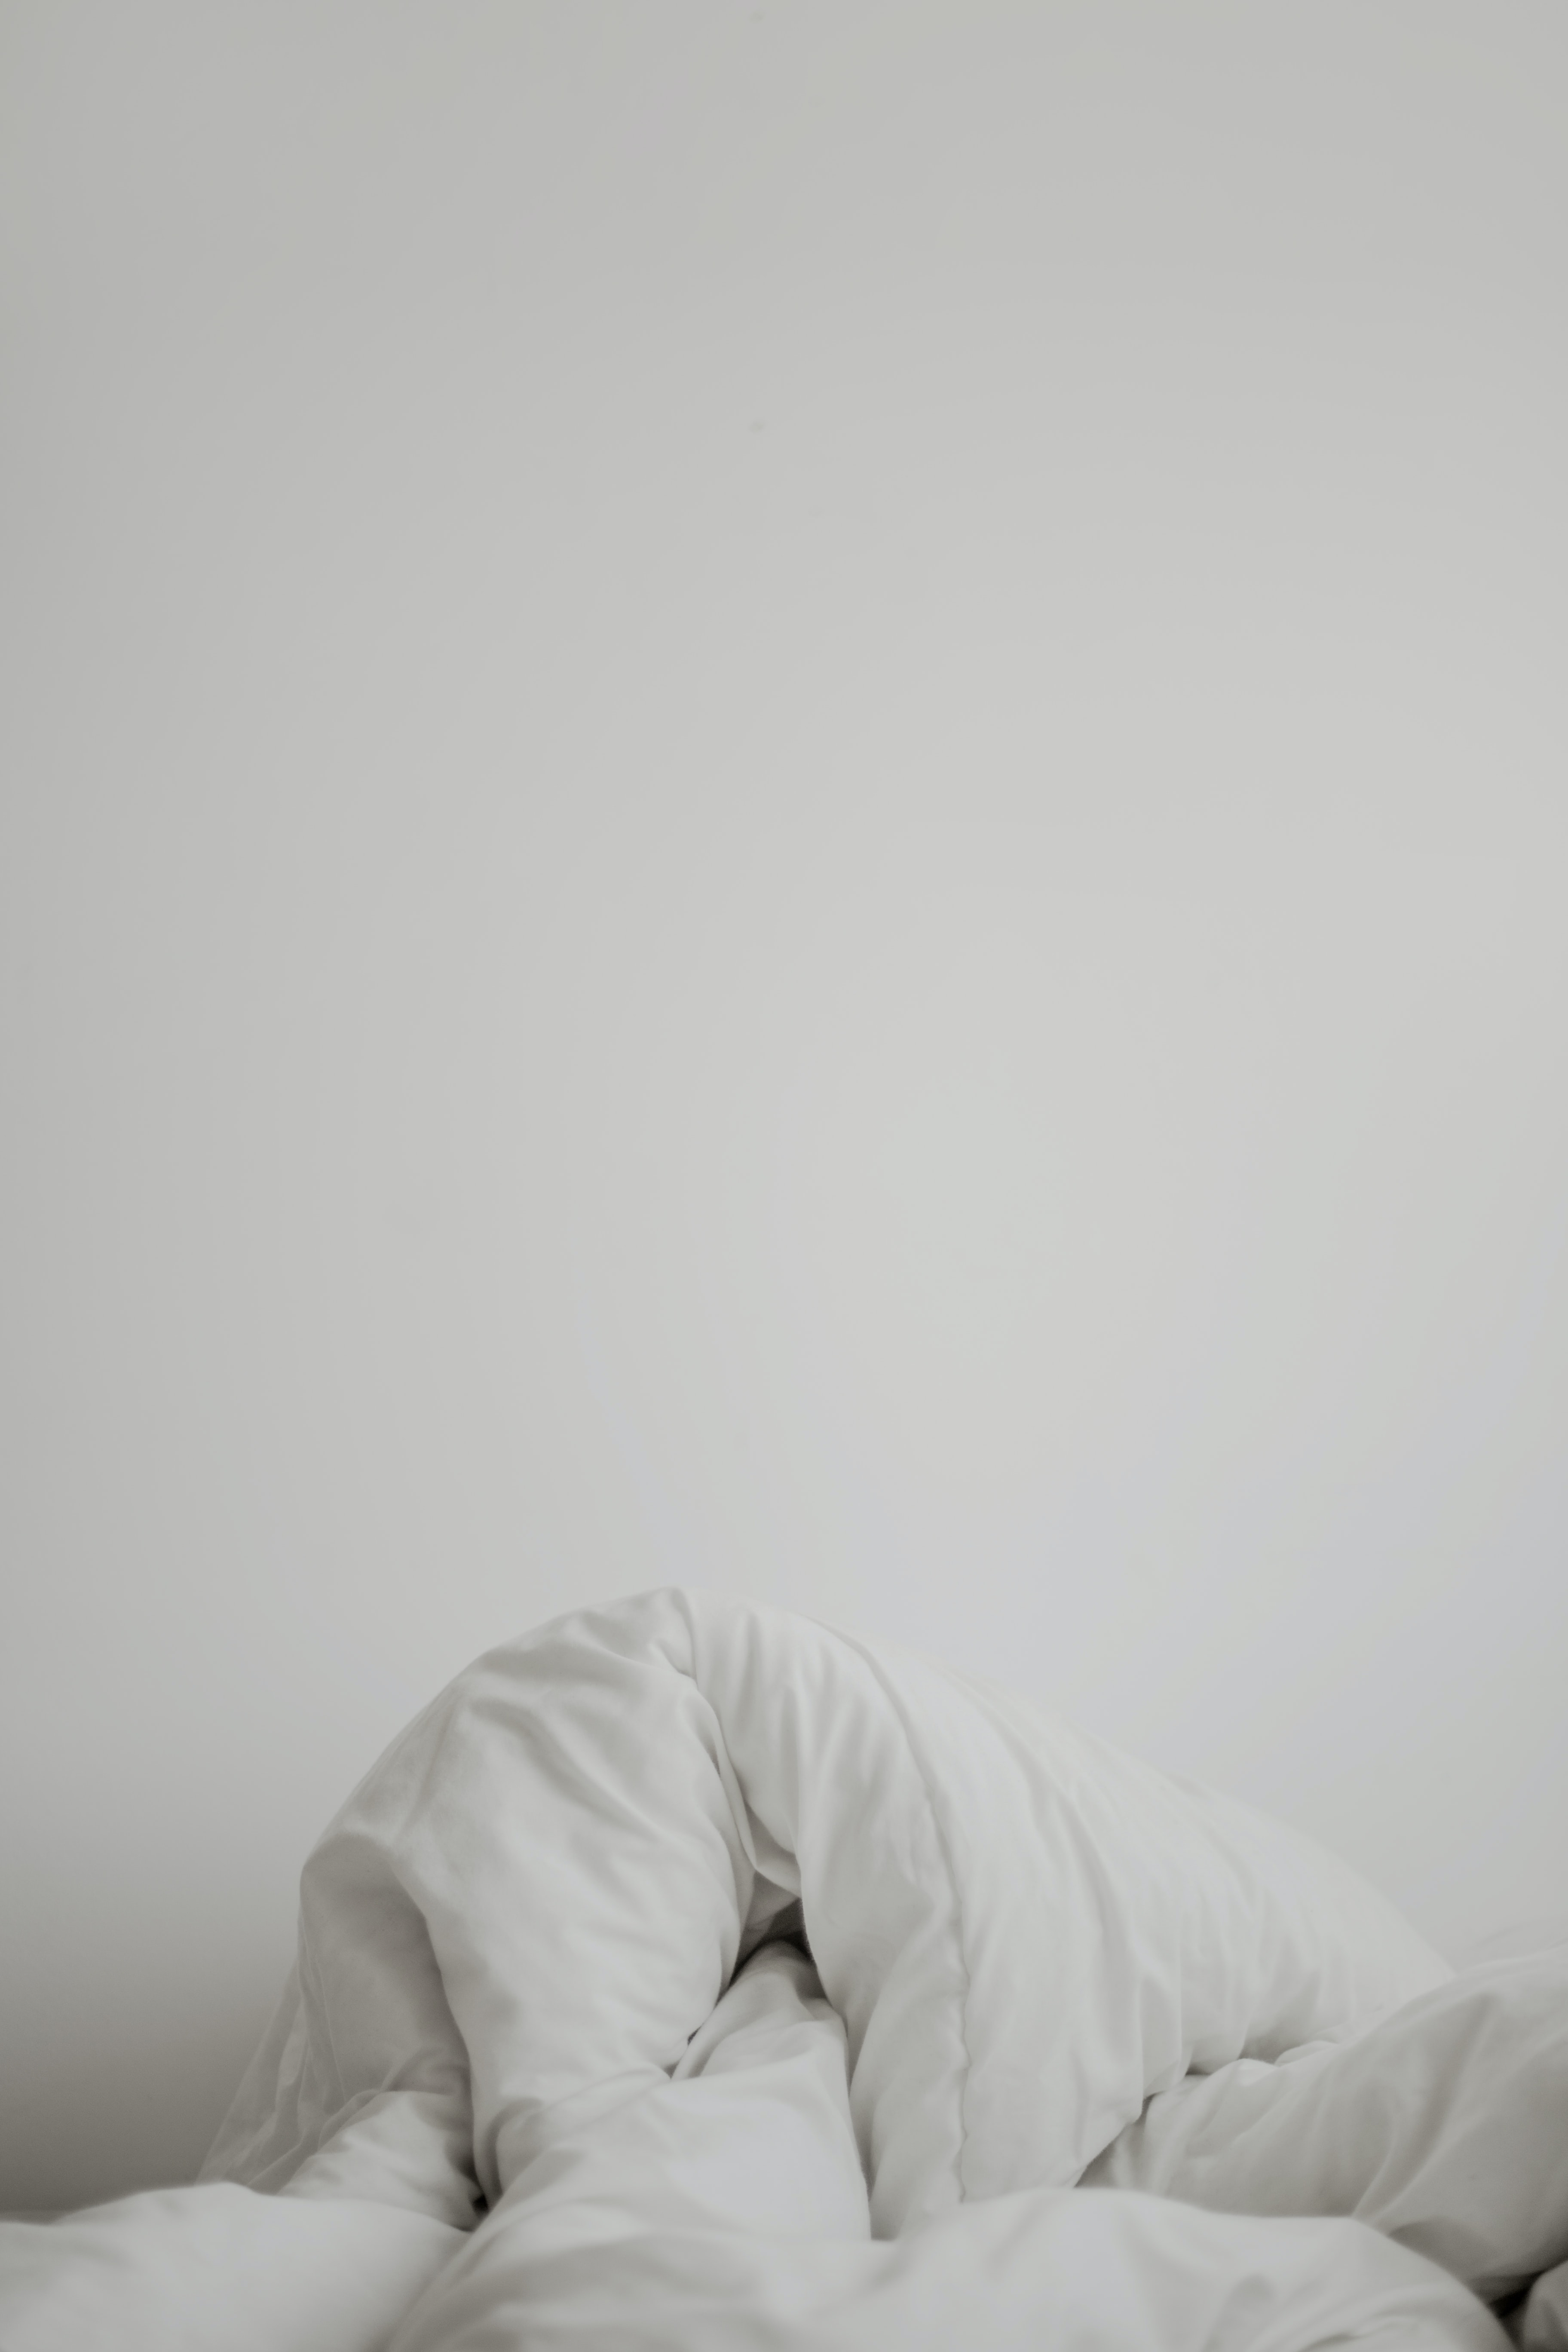 Messed up white blankets against a white wall.